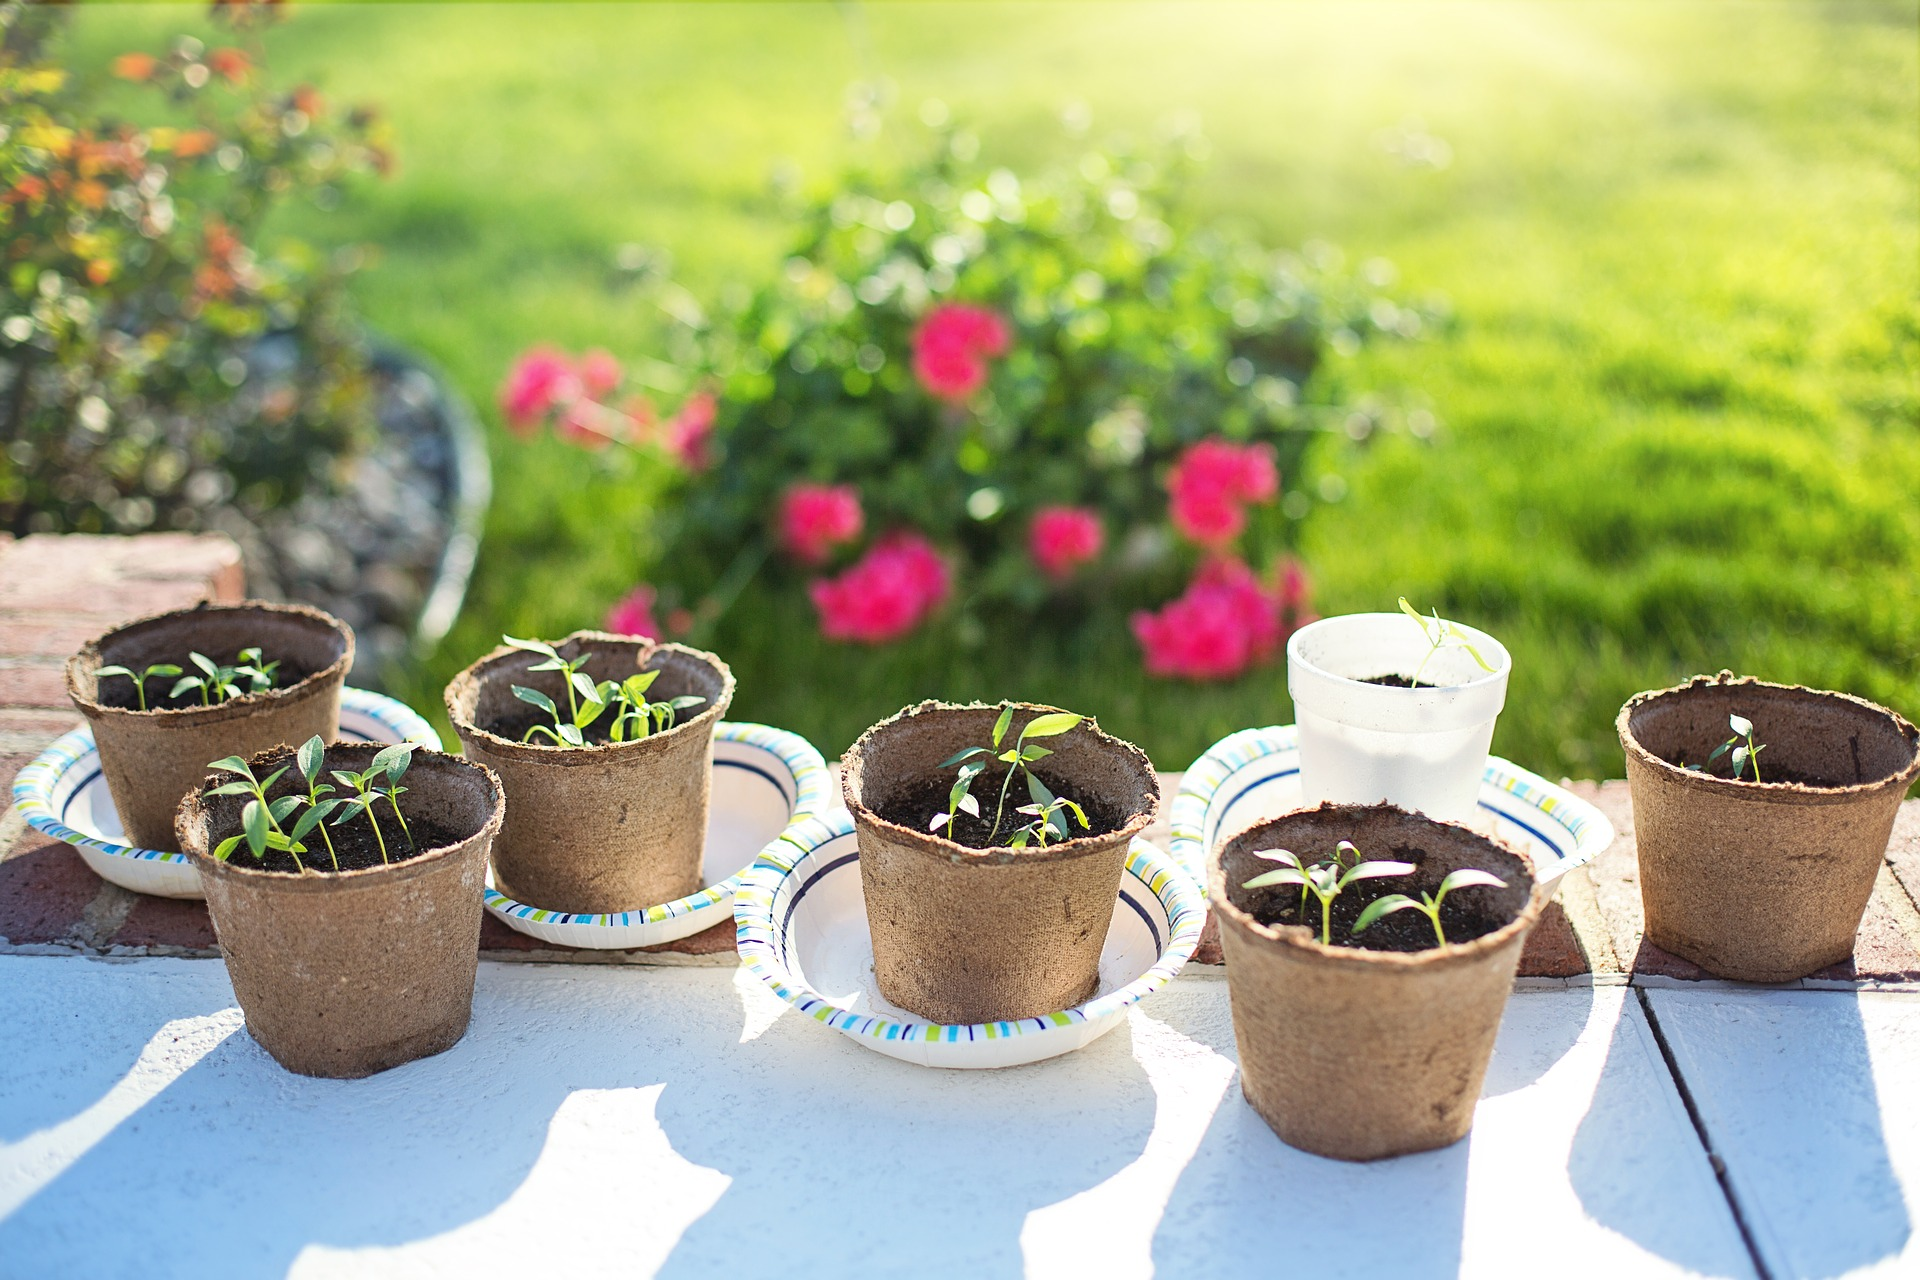 DIY Home sprouting kits